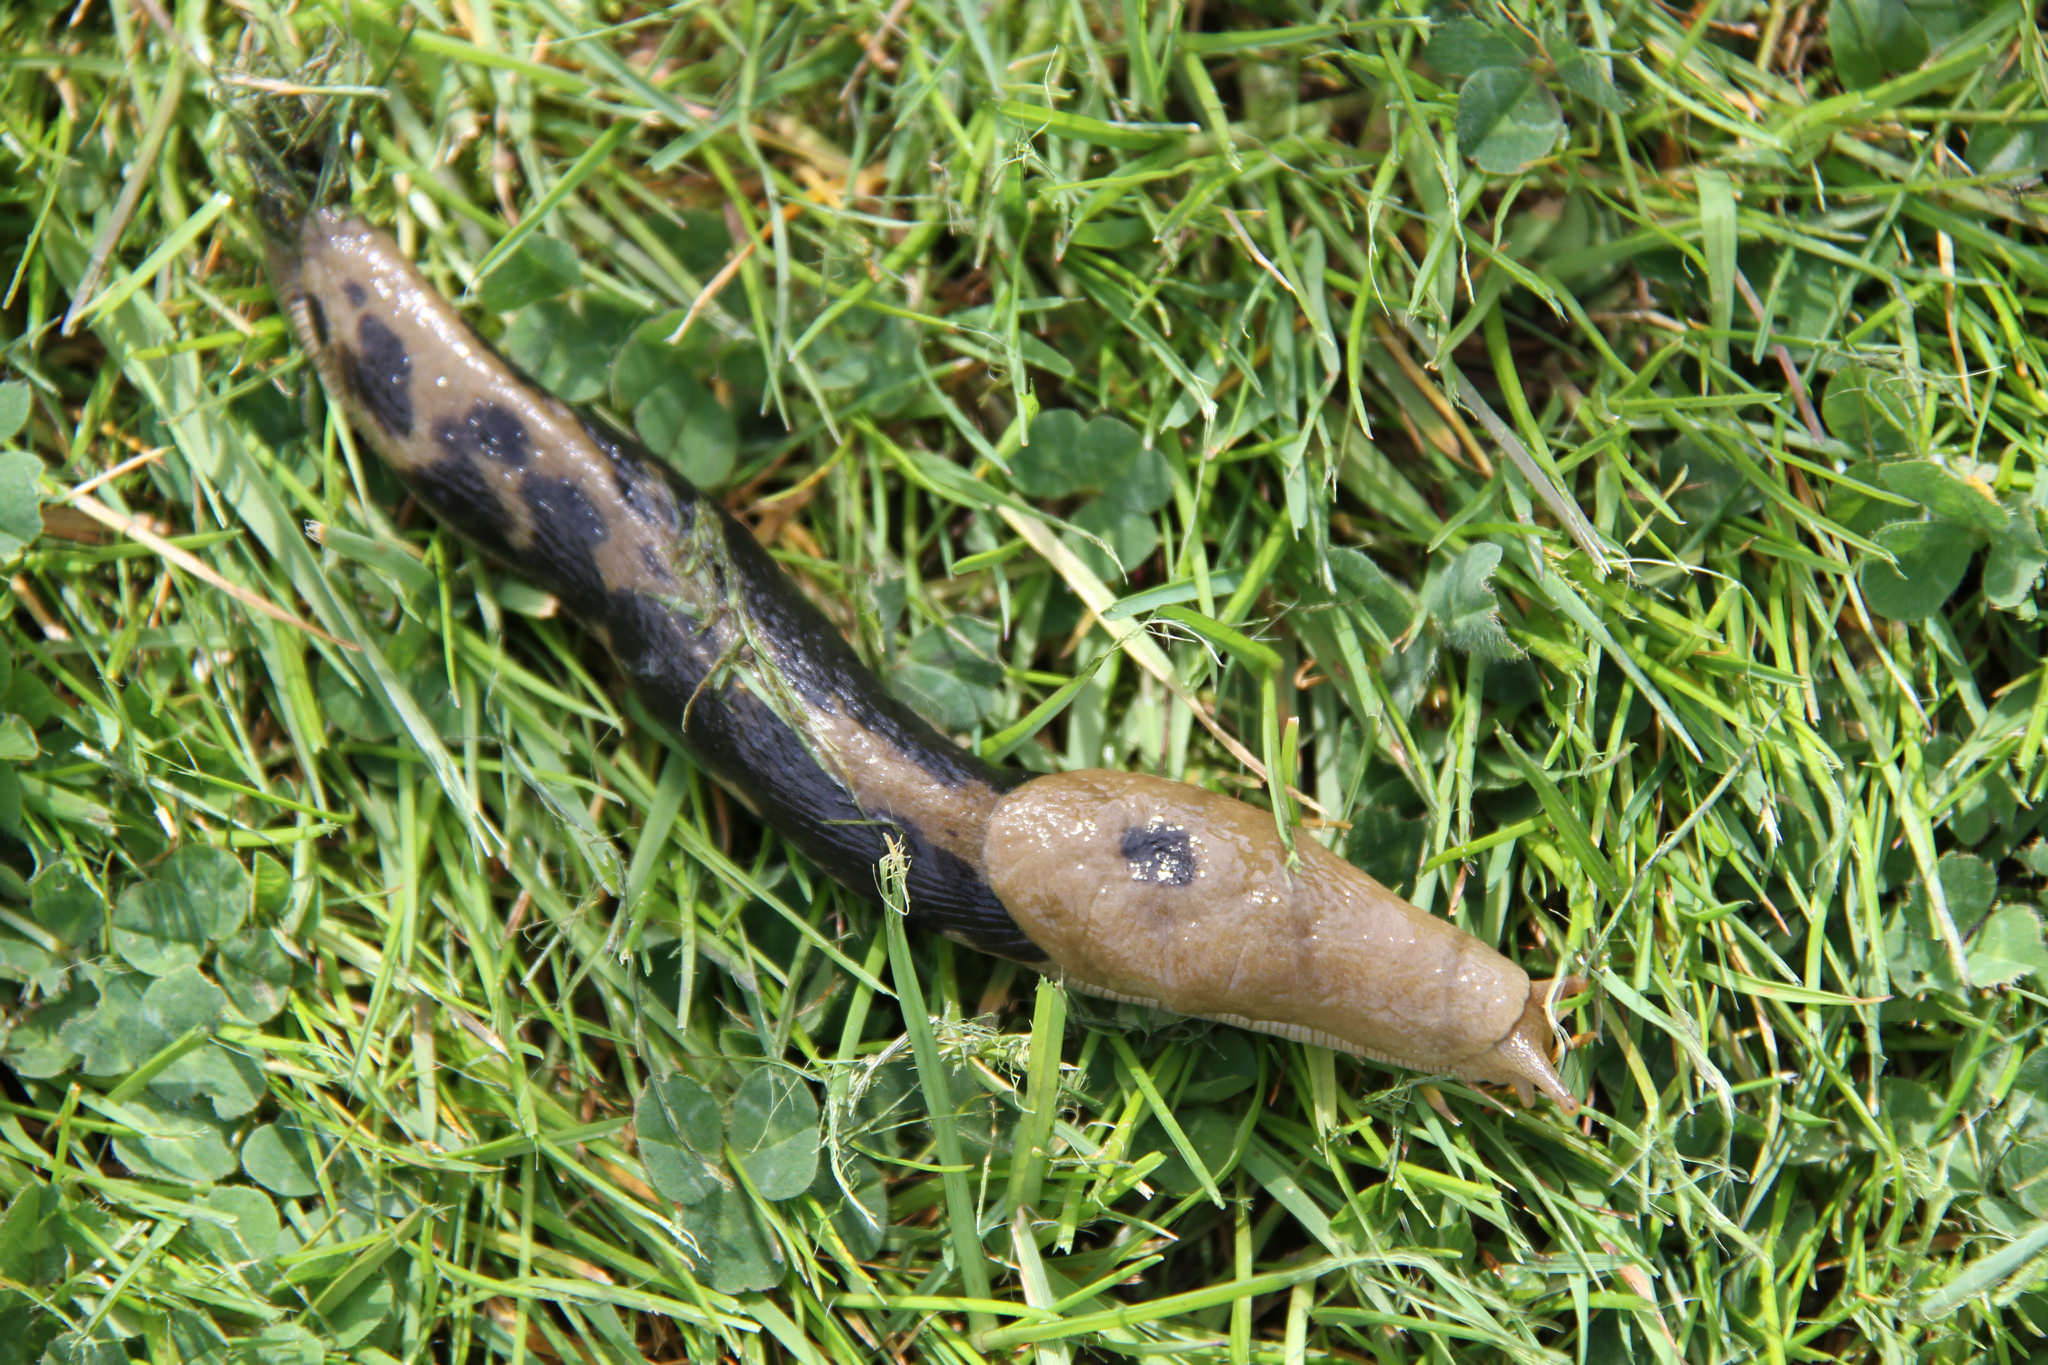 Slug it out with spring's slimy pests